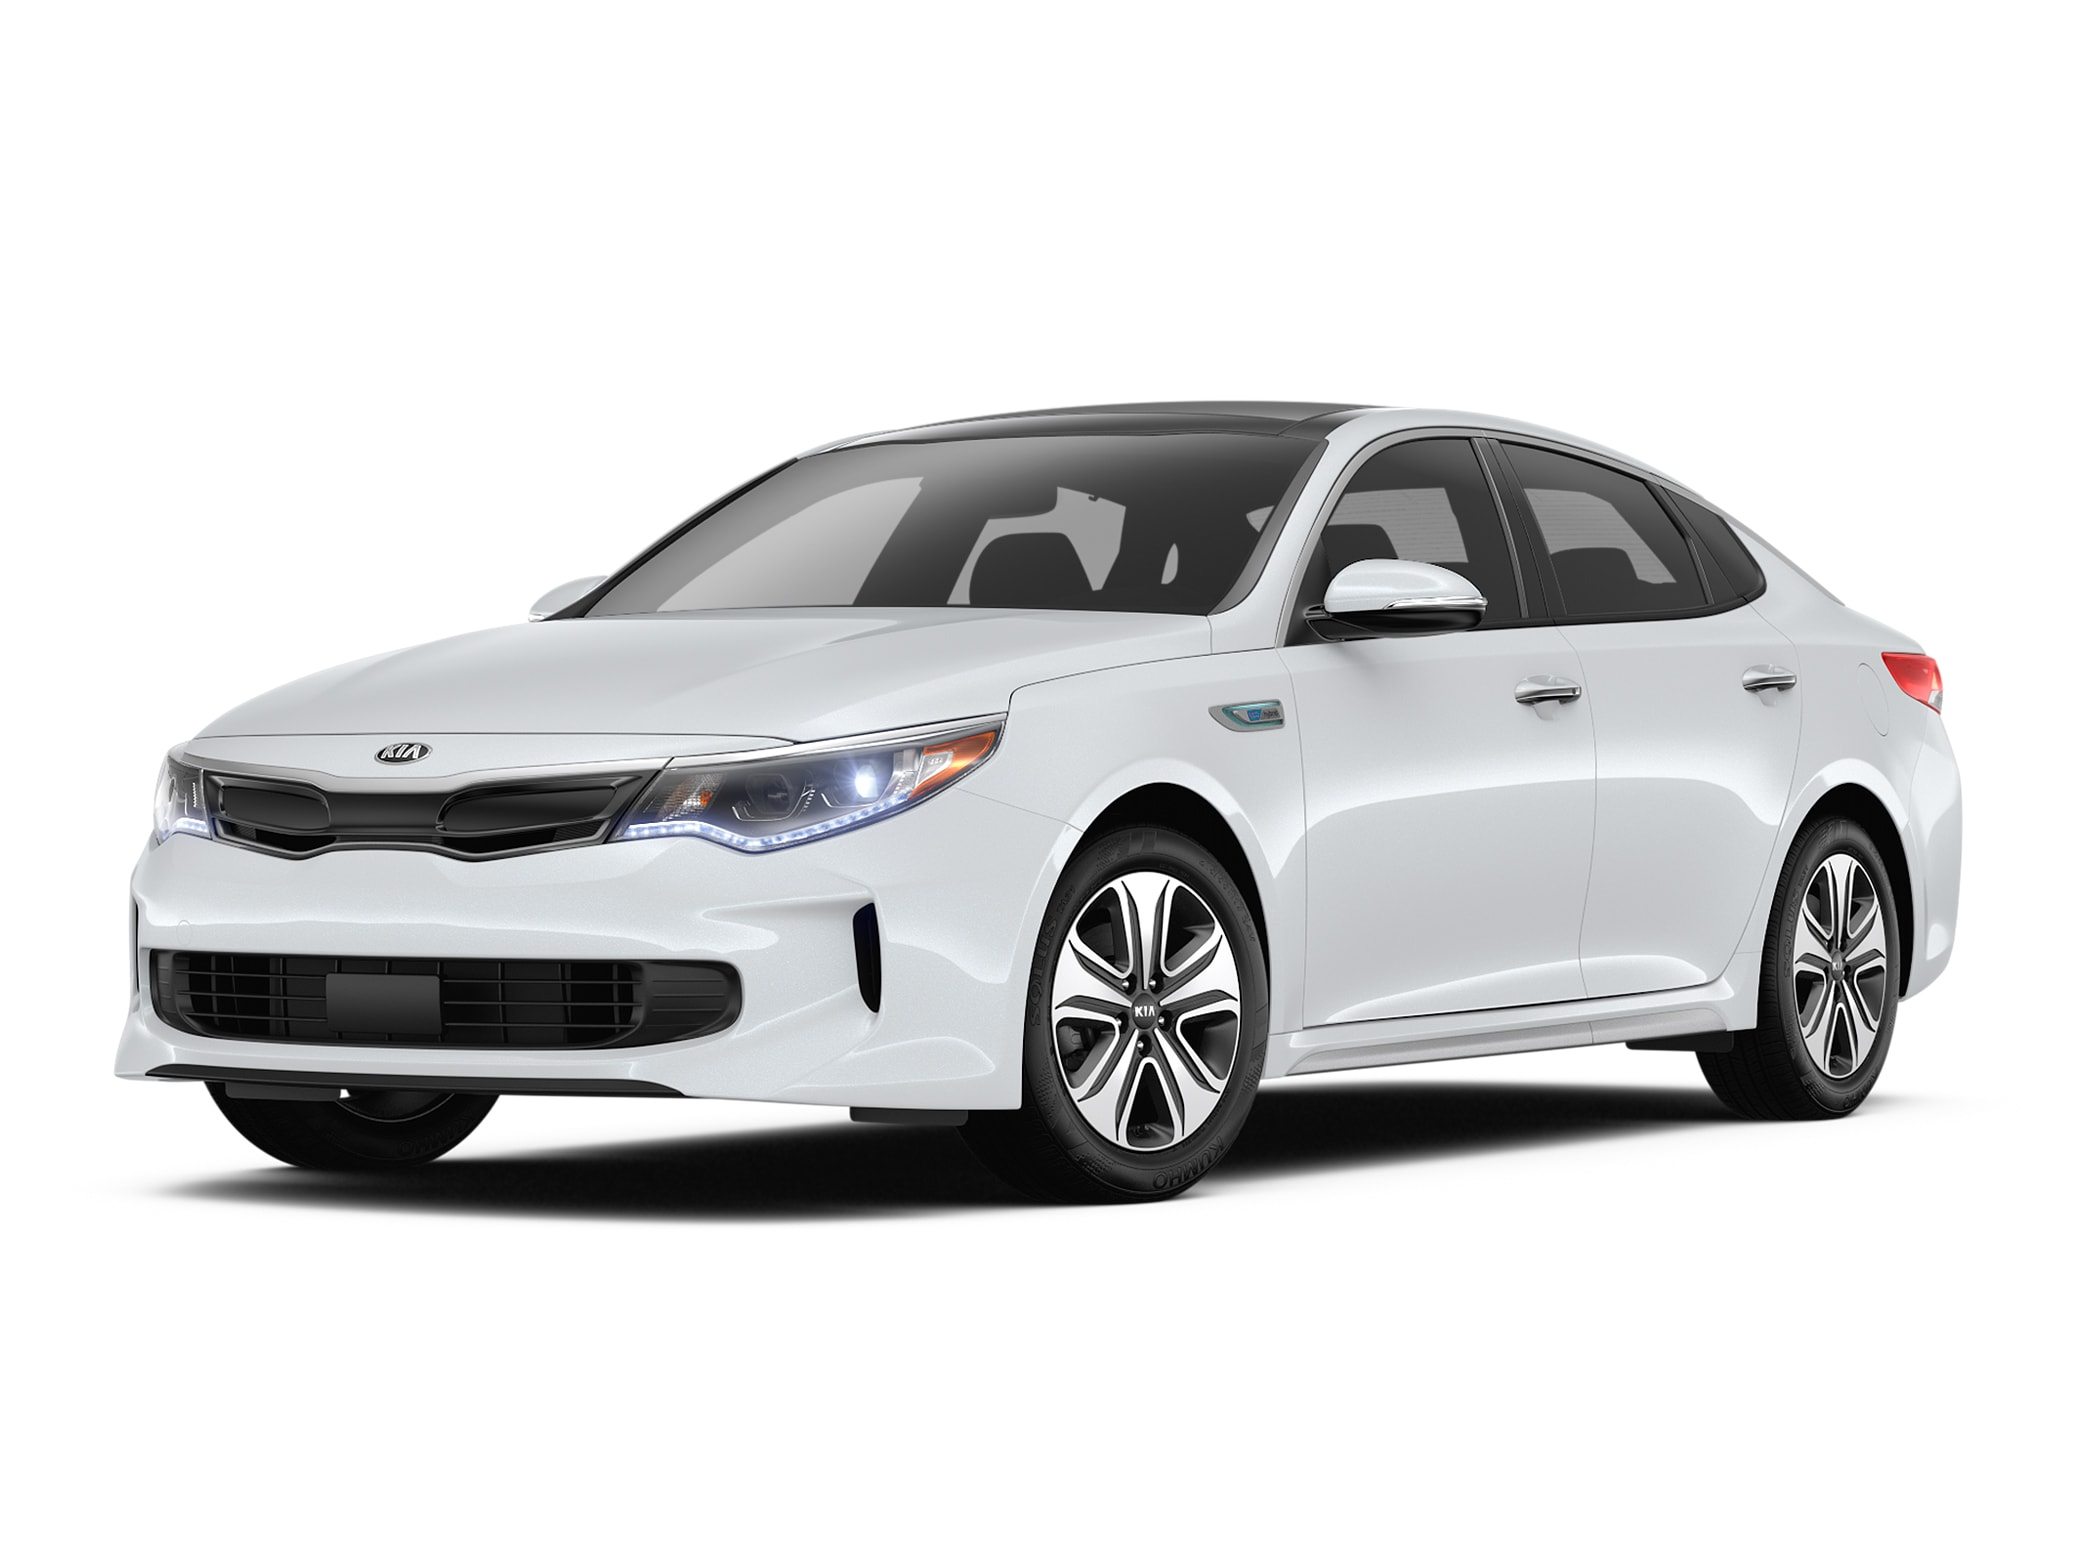 kia optima hybrid in el cajon ca team kia of el cajon. Black Bedroom Furniture Sets. Home Design Ideas